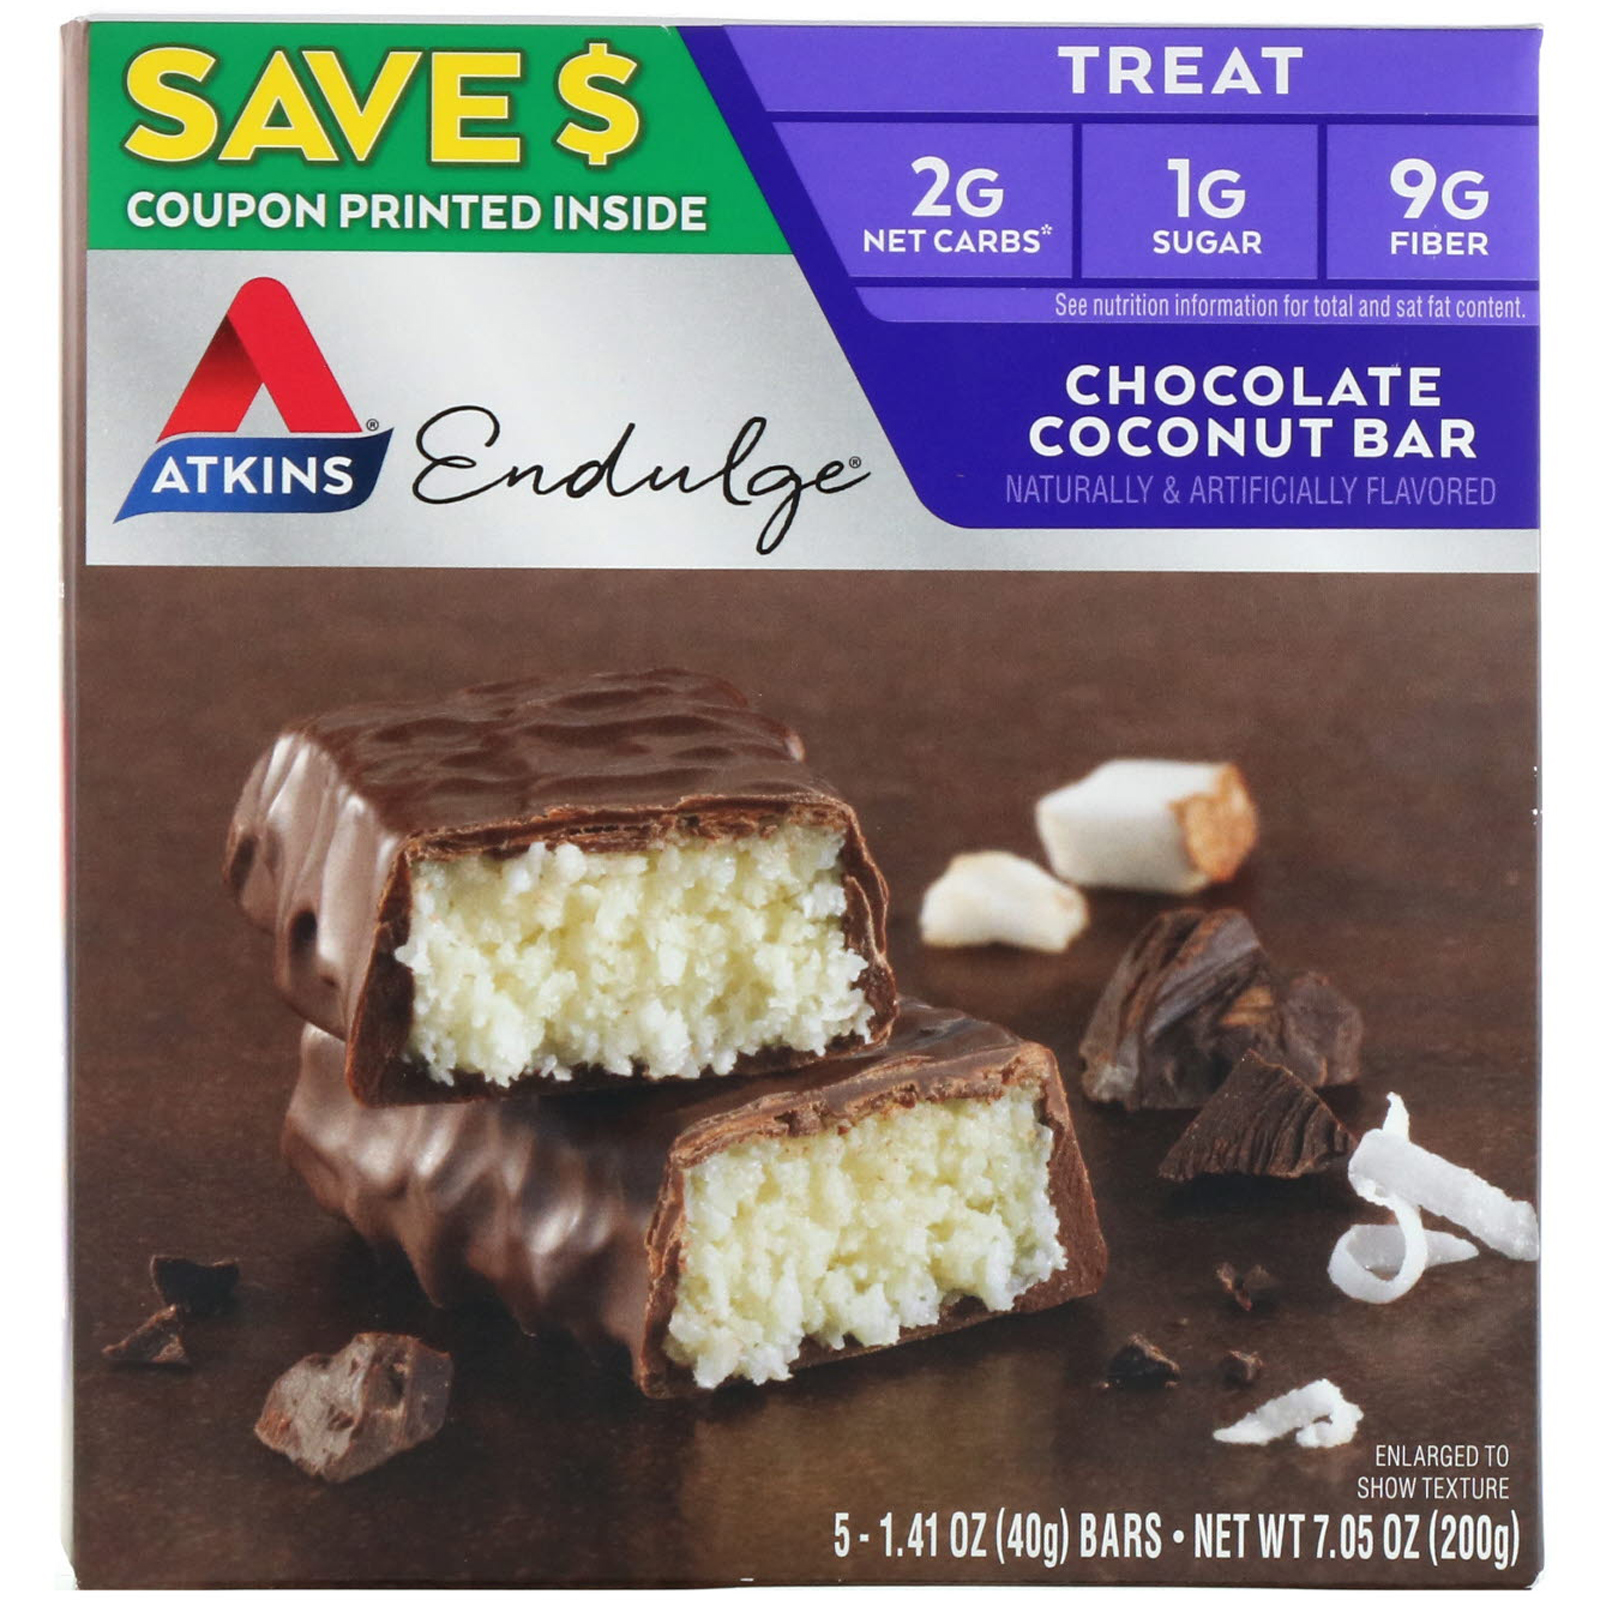 Atkins, Endulge, Chocolate Coconut Bar, 5 Bars, 1 41 oz (40 g) Each